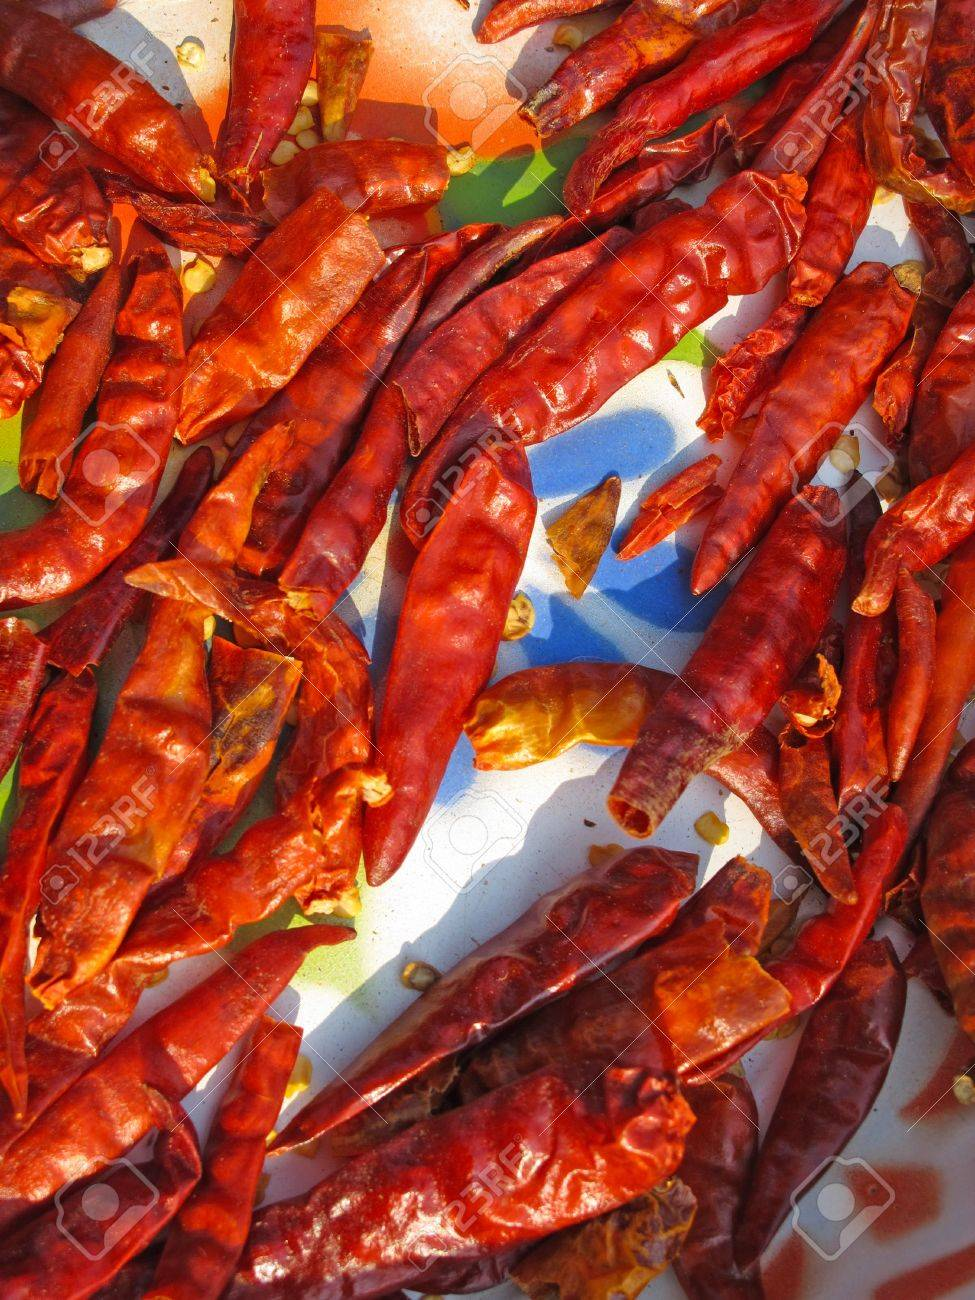 dried chilli - folkways to preserve food of Thai people Stock Photo - 18568043